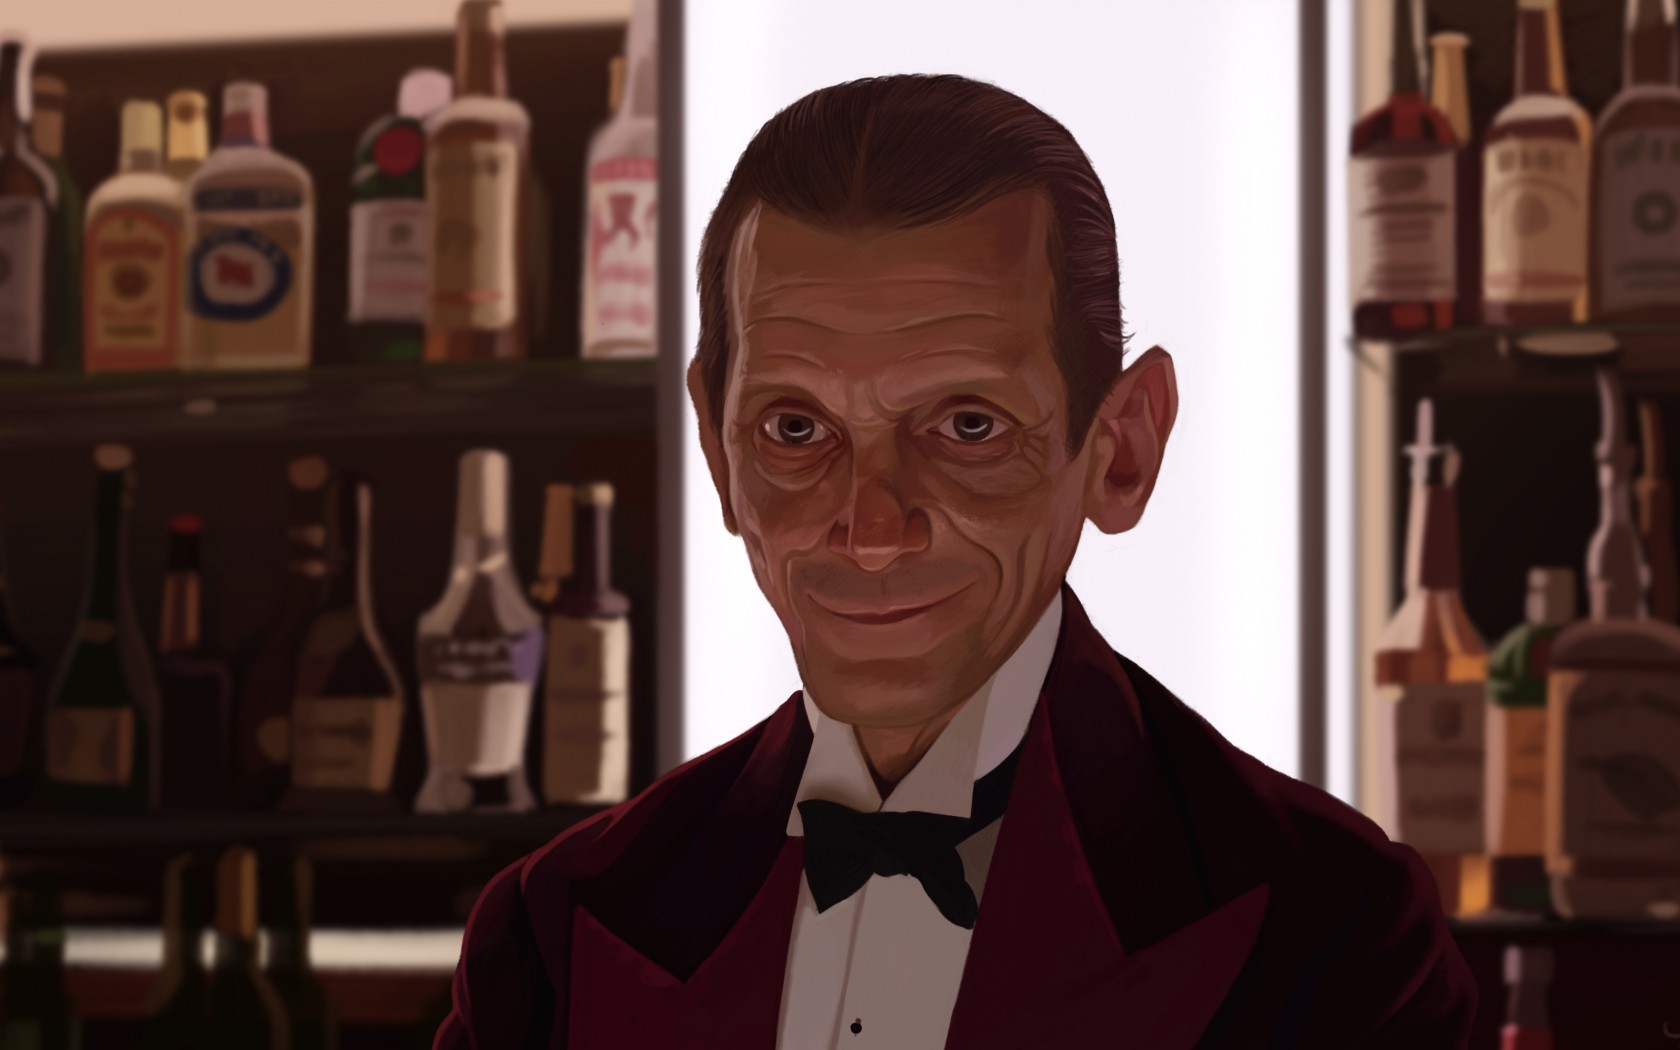 Download-the-shining-joe-turkel-lloyd-the-bartender-lloyd-films-resolution-wallpaper-wpc5804383